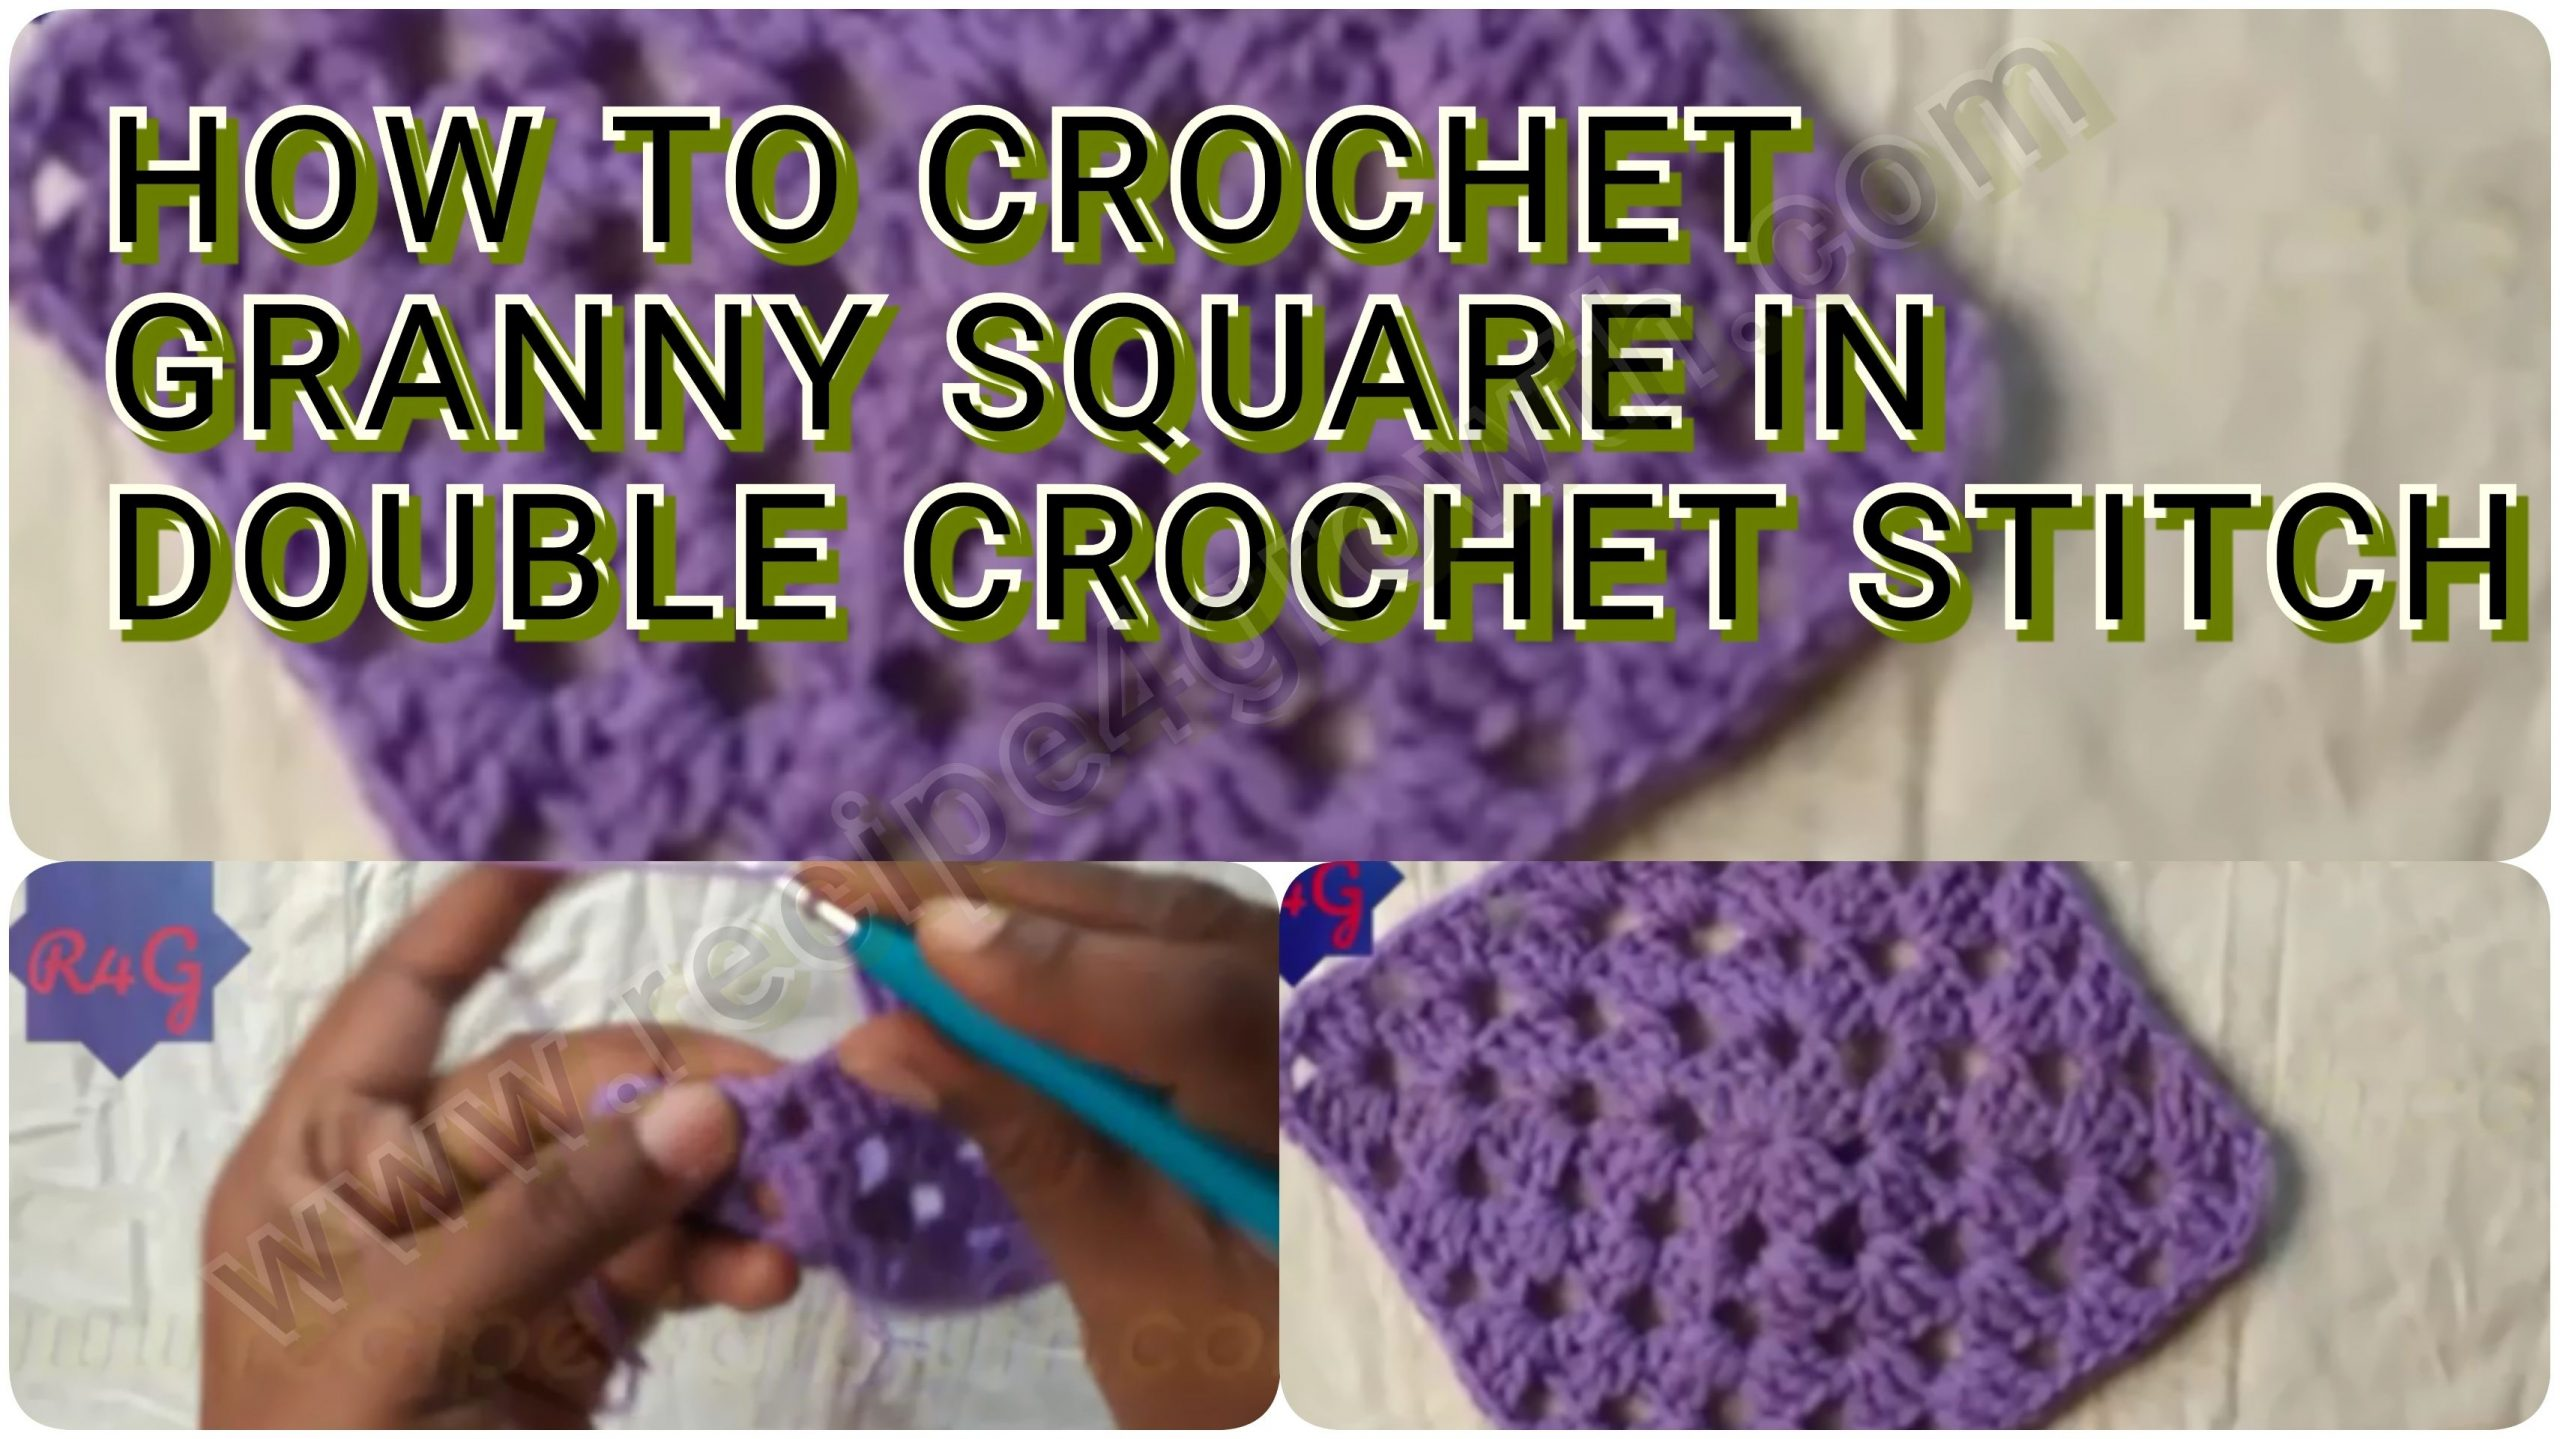 HOW TO CROCHET GRANNY SQUARE